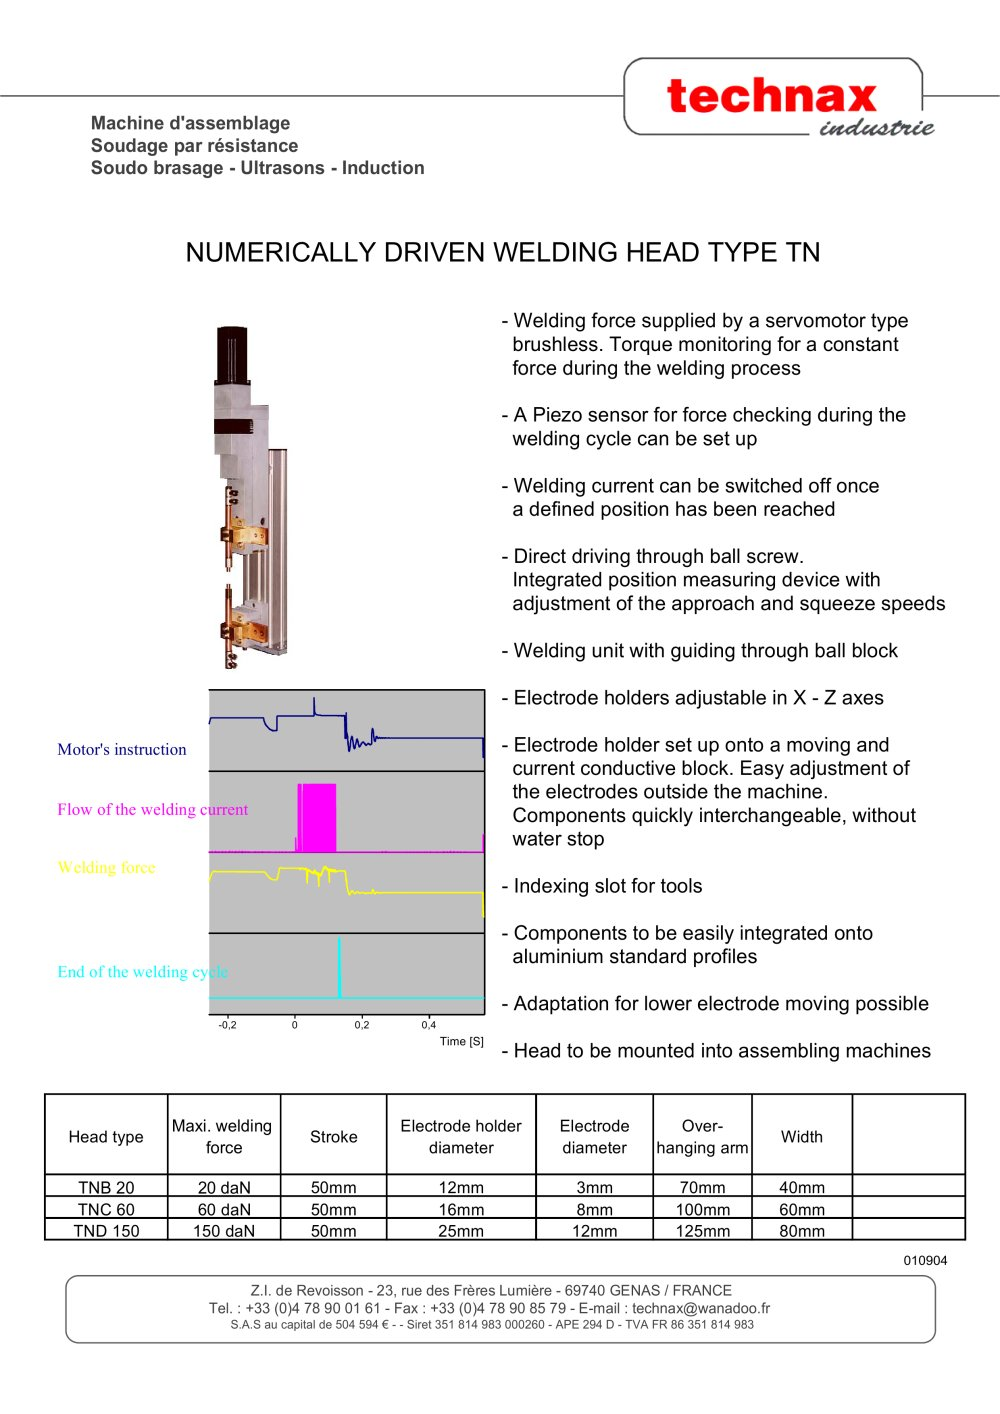 Numerically driven spot resistance welding head type TN - 1 / 1 Pages